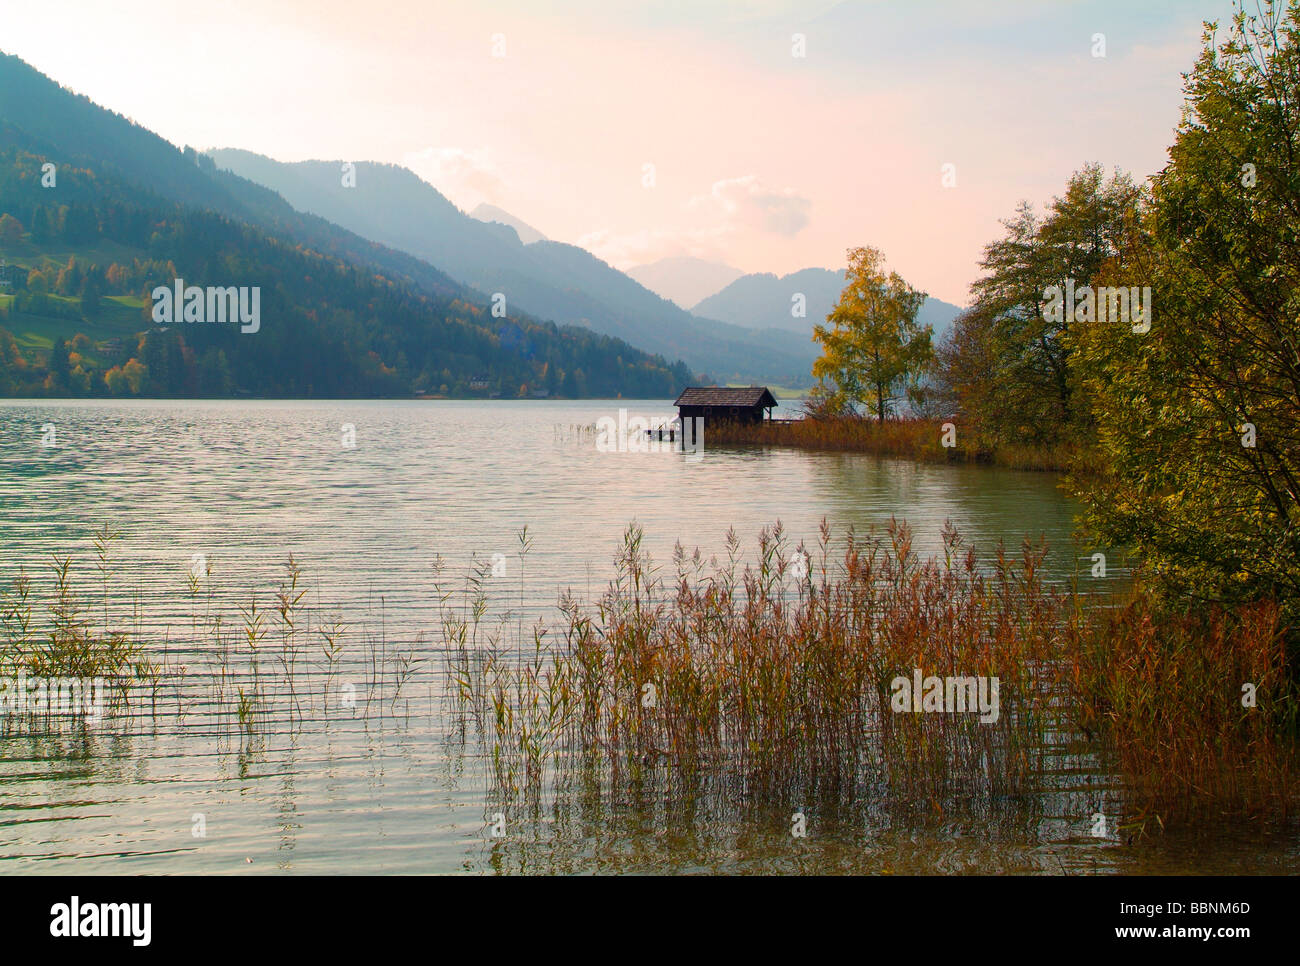 Geografia / viaggi, Austria, Carinzia, Weissensee, Additional-Rights-Clearance-Info-Not-Available Immagini Stock